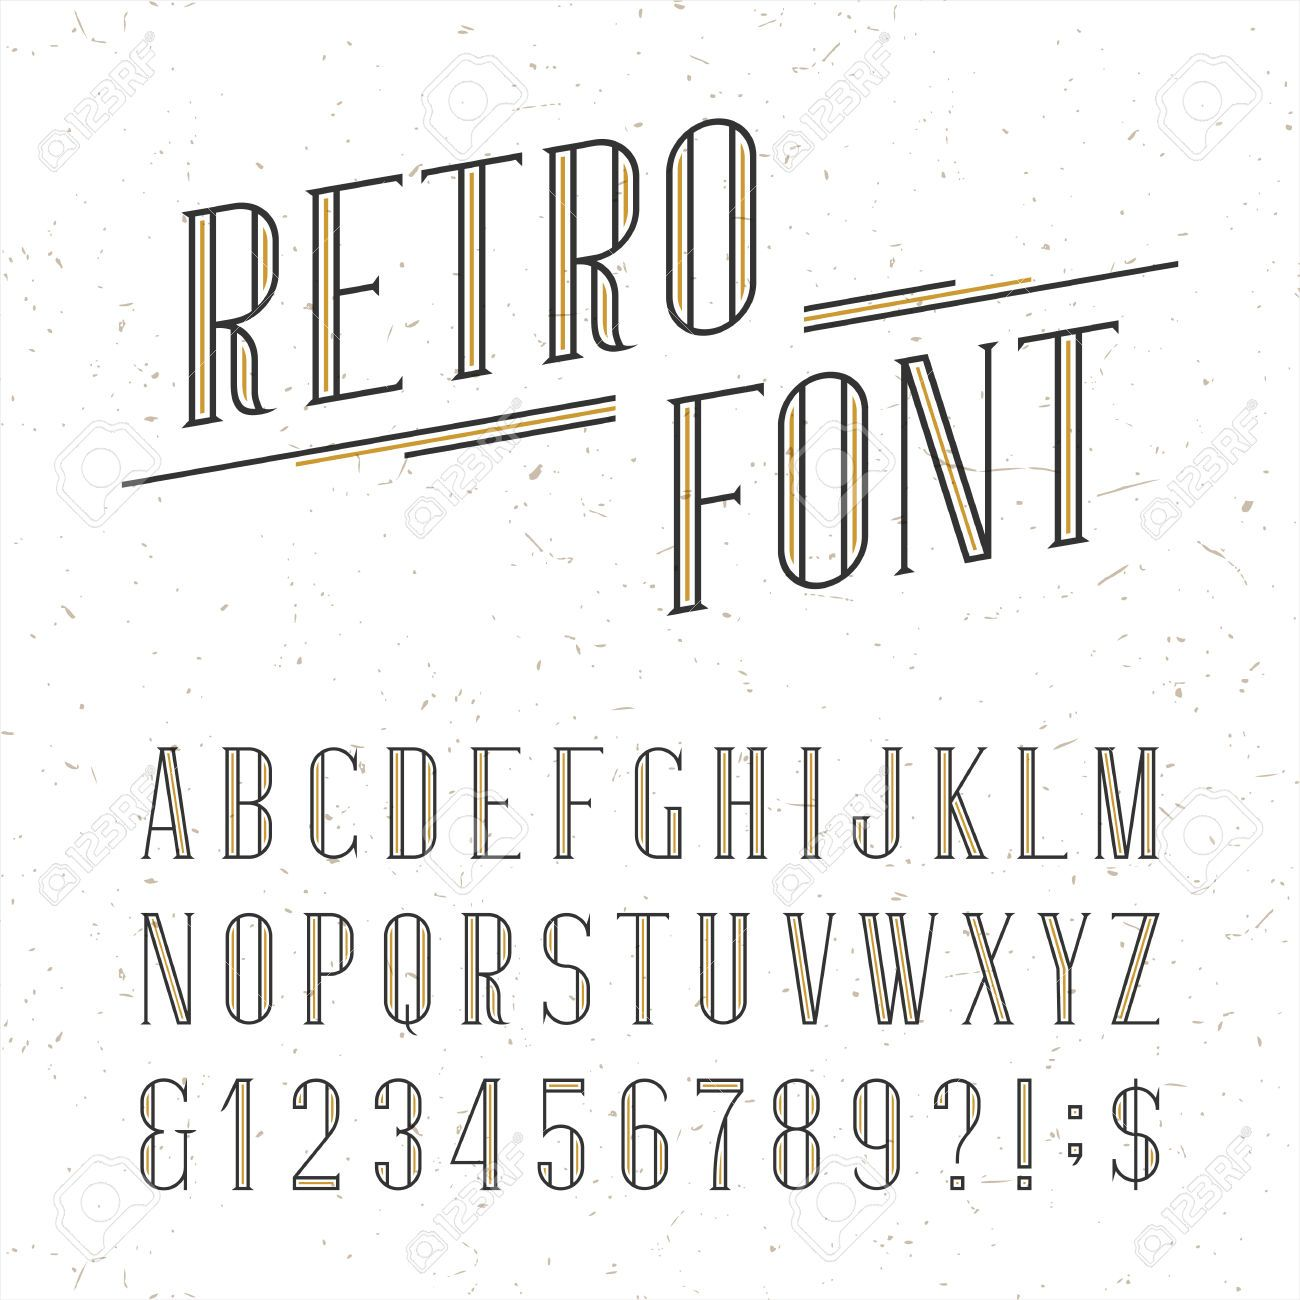 Gevonden op nl123rf via google banners pinterest banners serif type letters numbers and symbols on the white background with distressed overlay texture stock vector typography for labels headlines posters etc buycottarizona